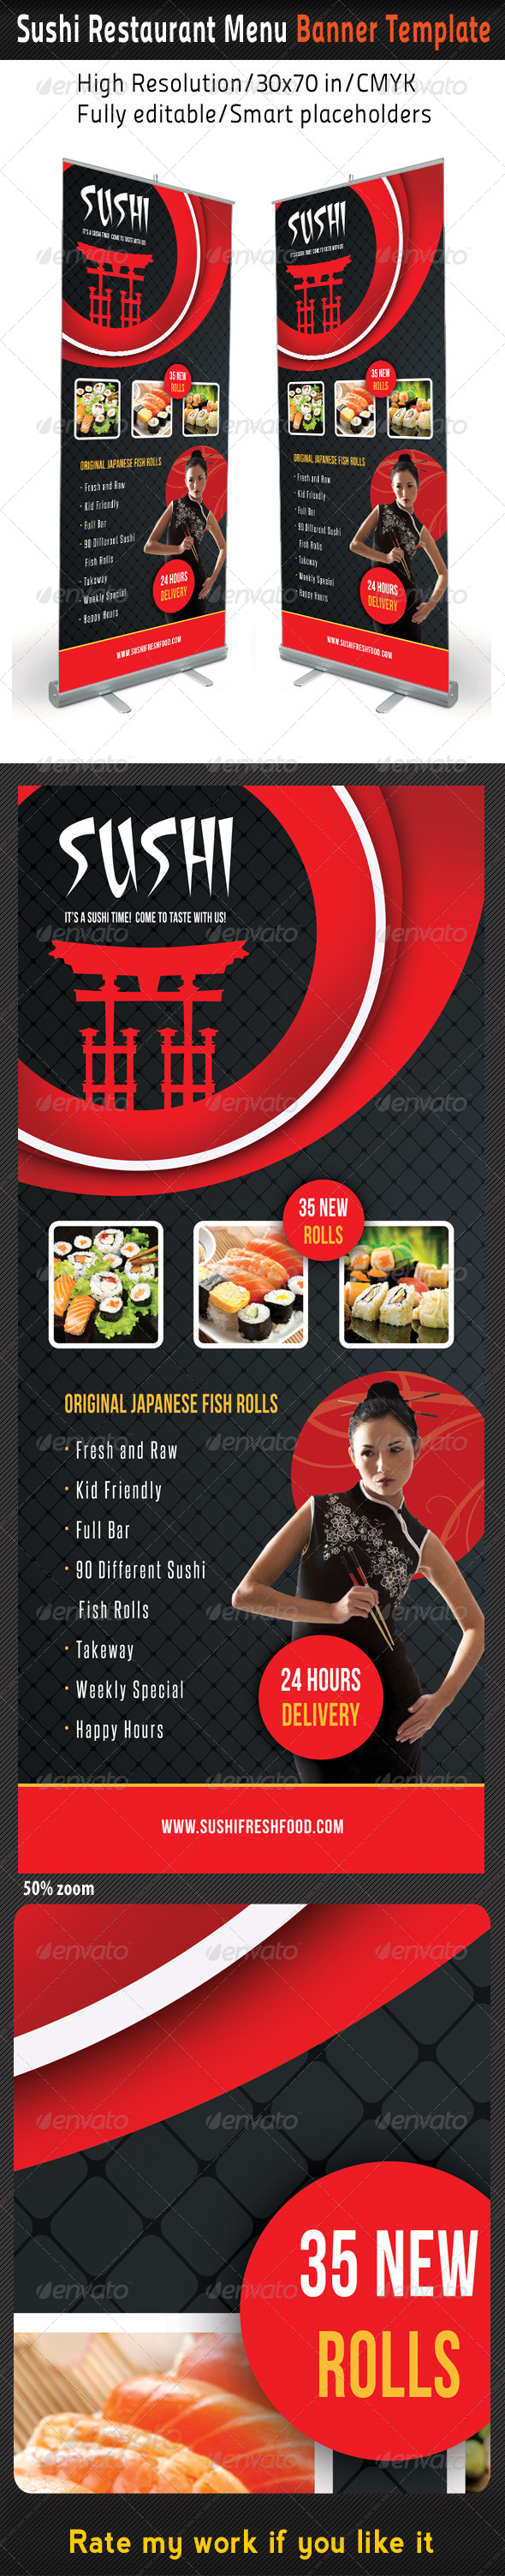 GraphicRiver Sushi Restaurant Menu Banner Template 03 8438857